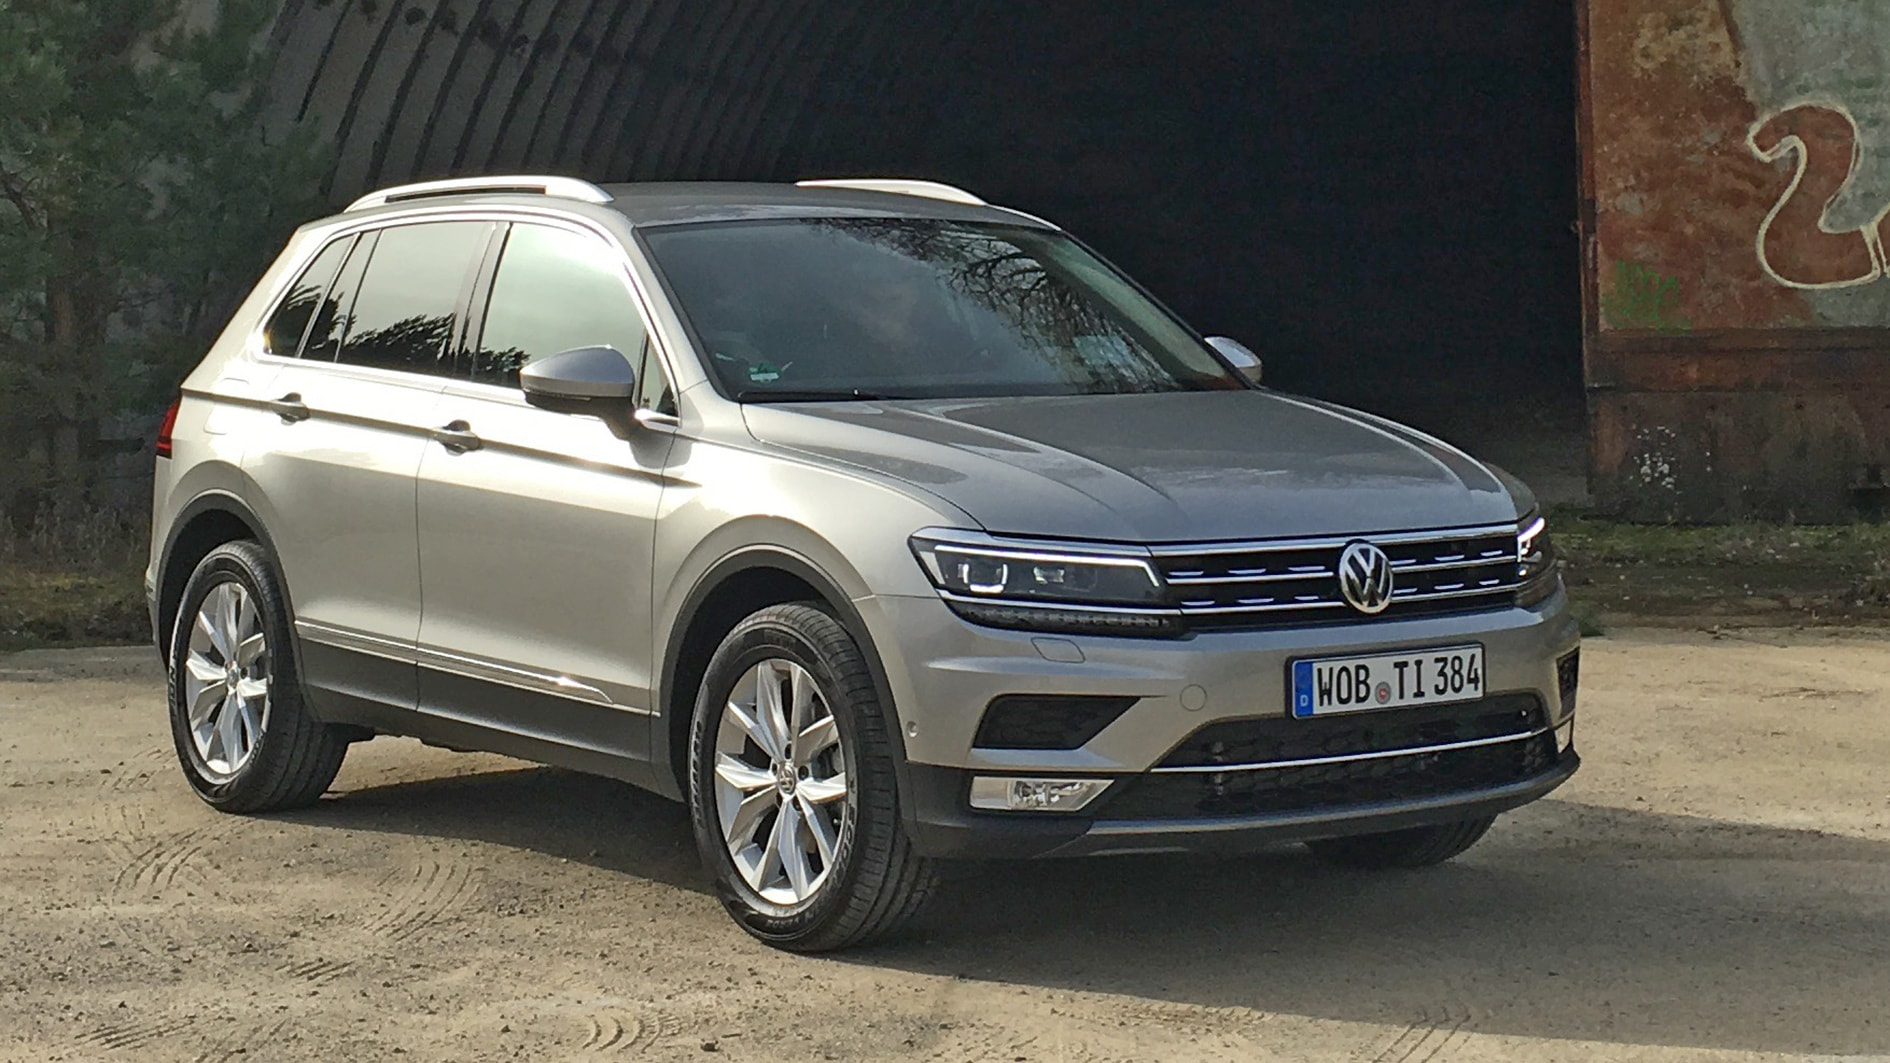 Volkswagen Tiguan 2 Backgrounds